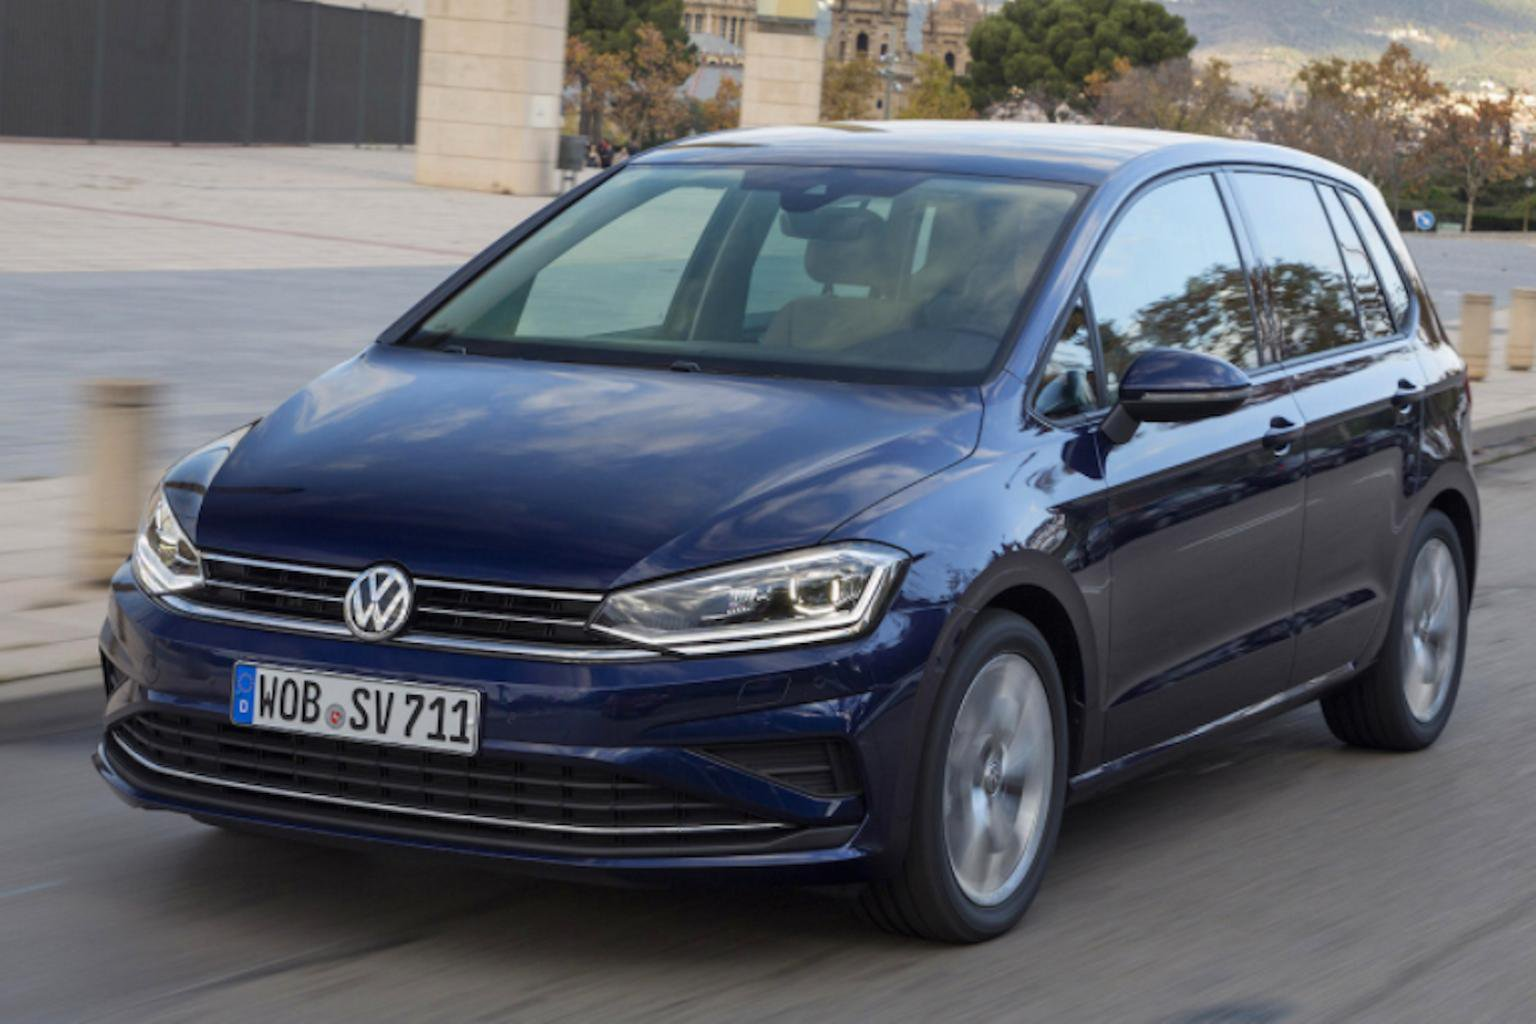 2017 Volkswagen Golf Sv Review Price Specs And Release Date